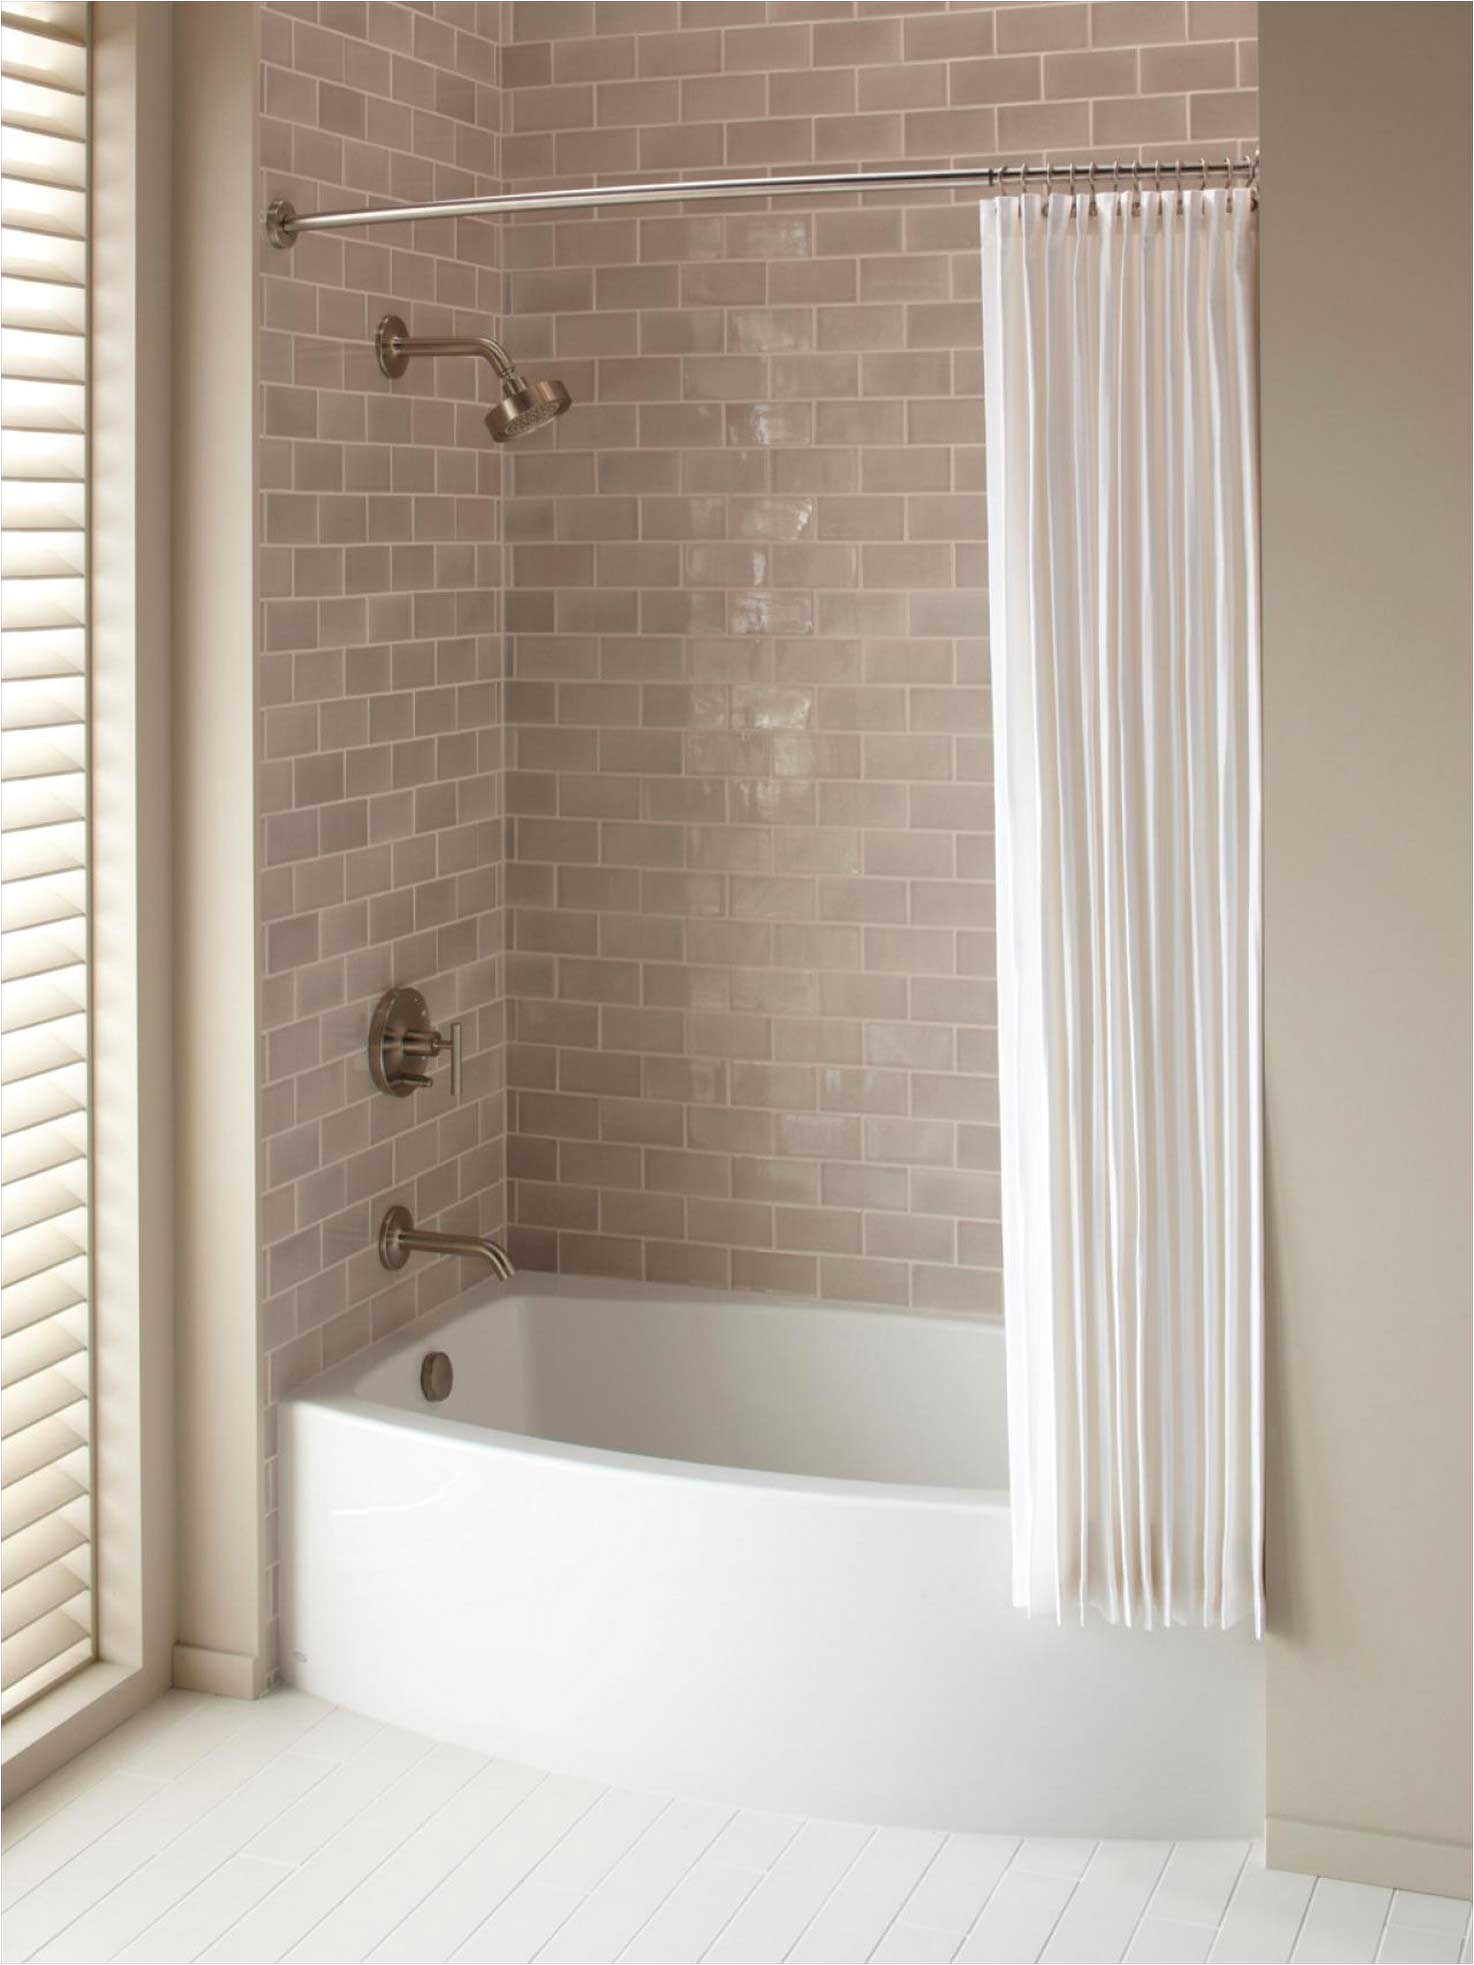 classic freestanding deep bathtubs to suit small spaces